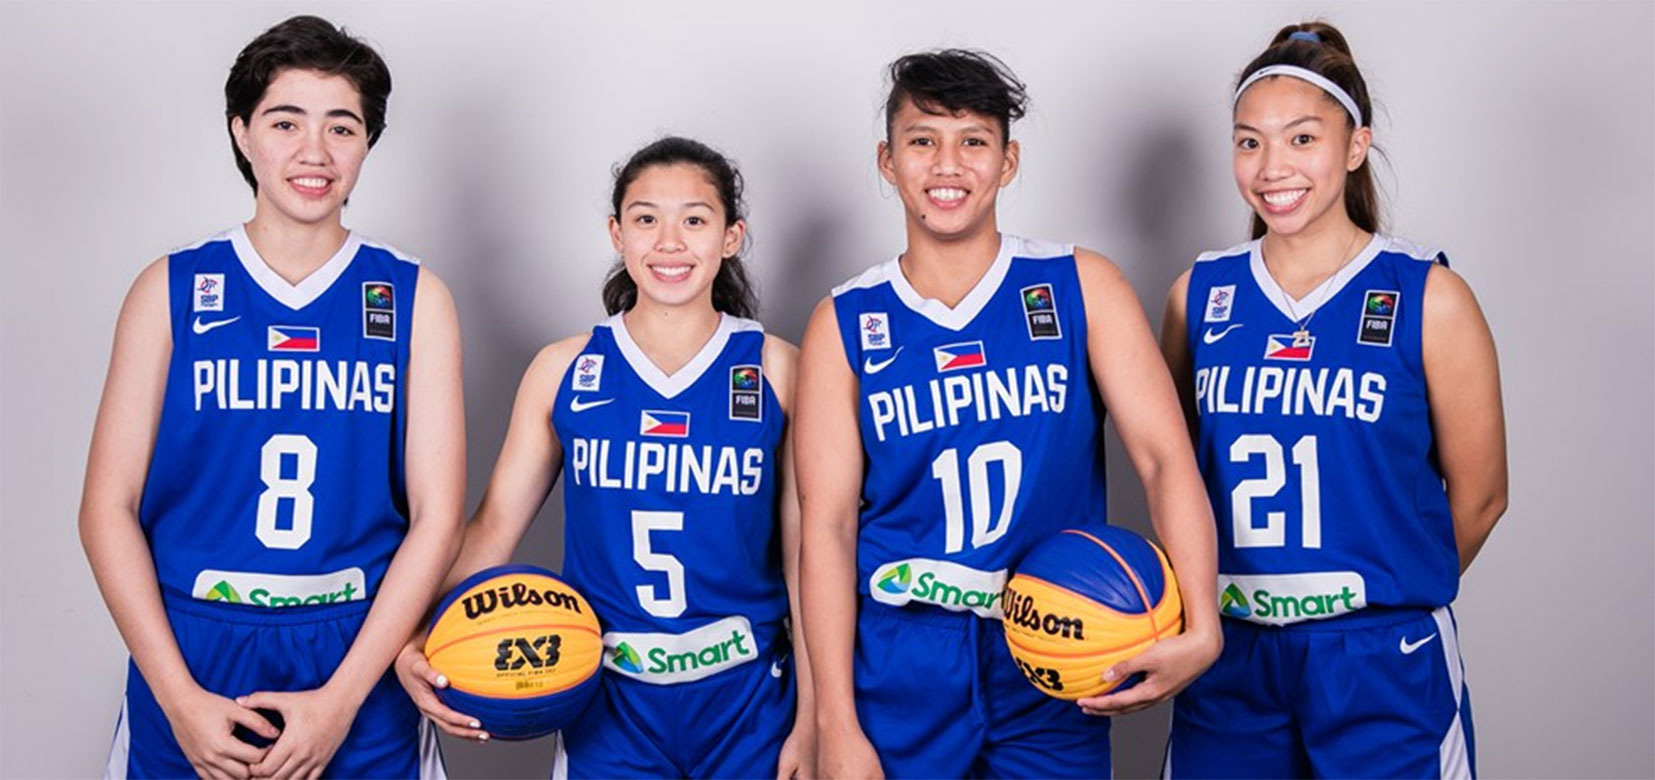 Tiebreaker Times Gilas Girls stun New Zealand to advance to 3x3 Asia Cup semis 3x3 Basketball Gilas Pilipinas News  Patrick Aquino New Zealand (Basketball) Kristine Cayabyab Gilas Pilipinas Women Ella Fajardo Camille Clarin Angelica Surada 2019 FIBA 3X3 Under-18 Asia Cup